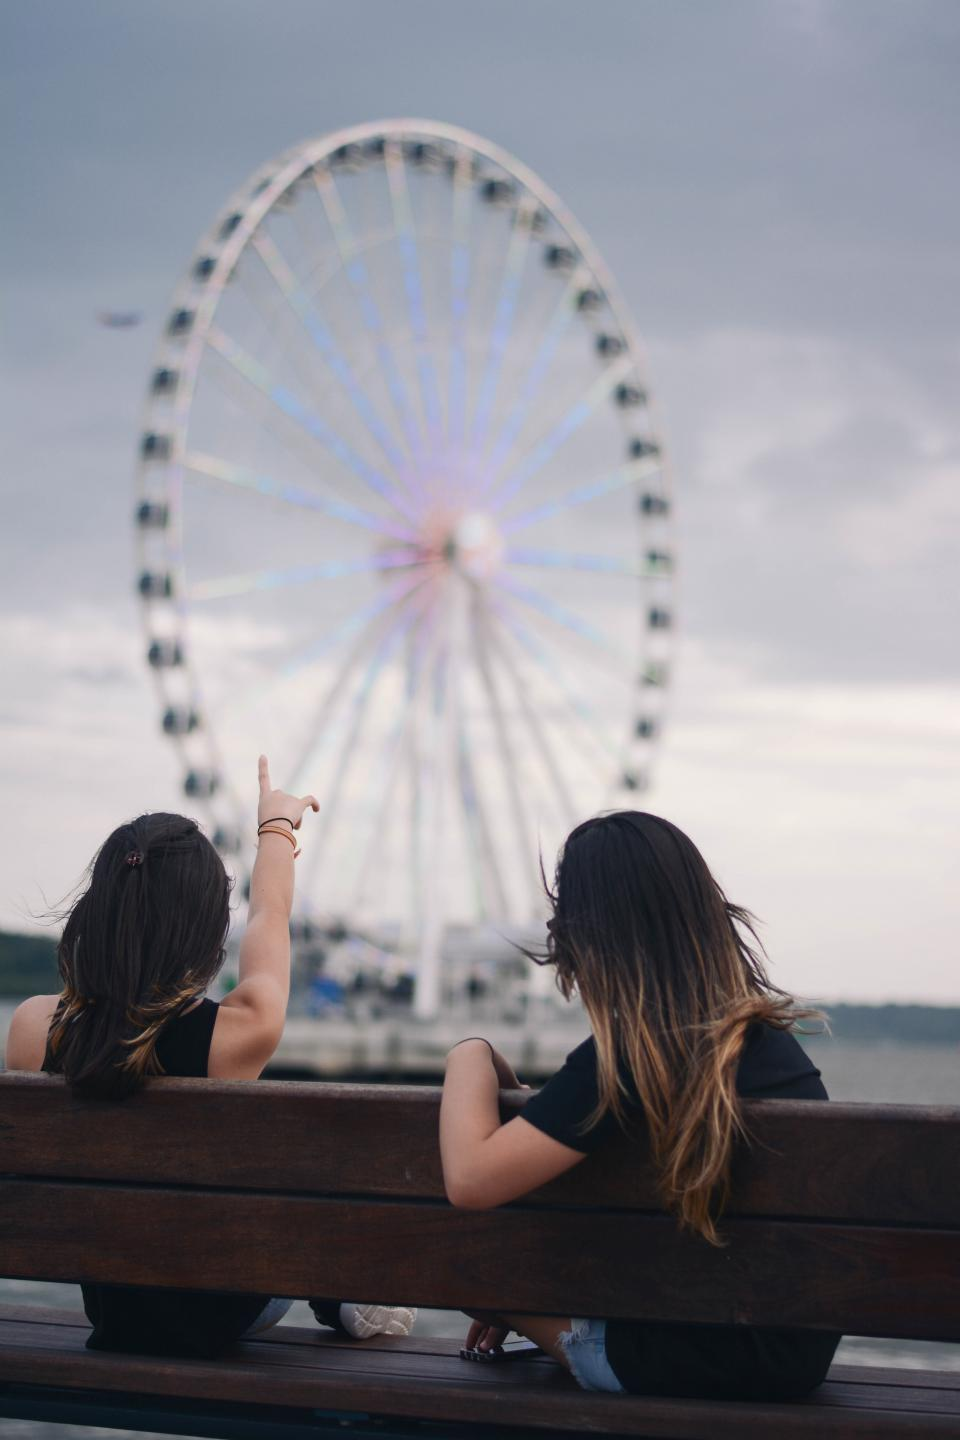 women girls ladies people friends bonding ferris wheel them amusement park point sit bench nature sky clouds bokeh